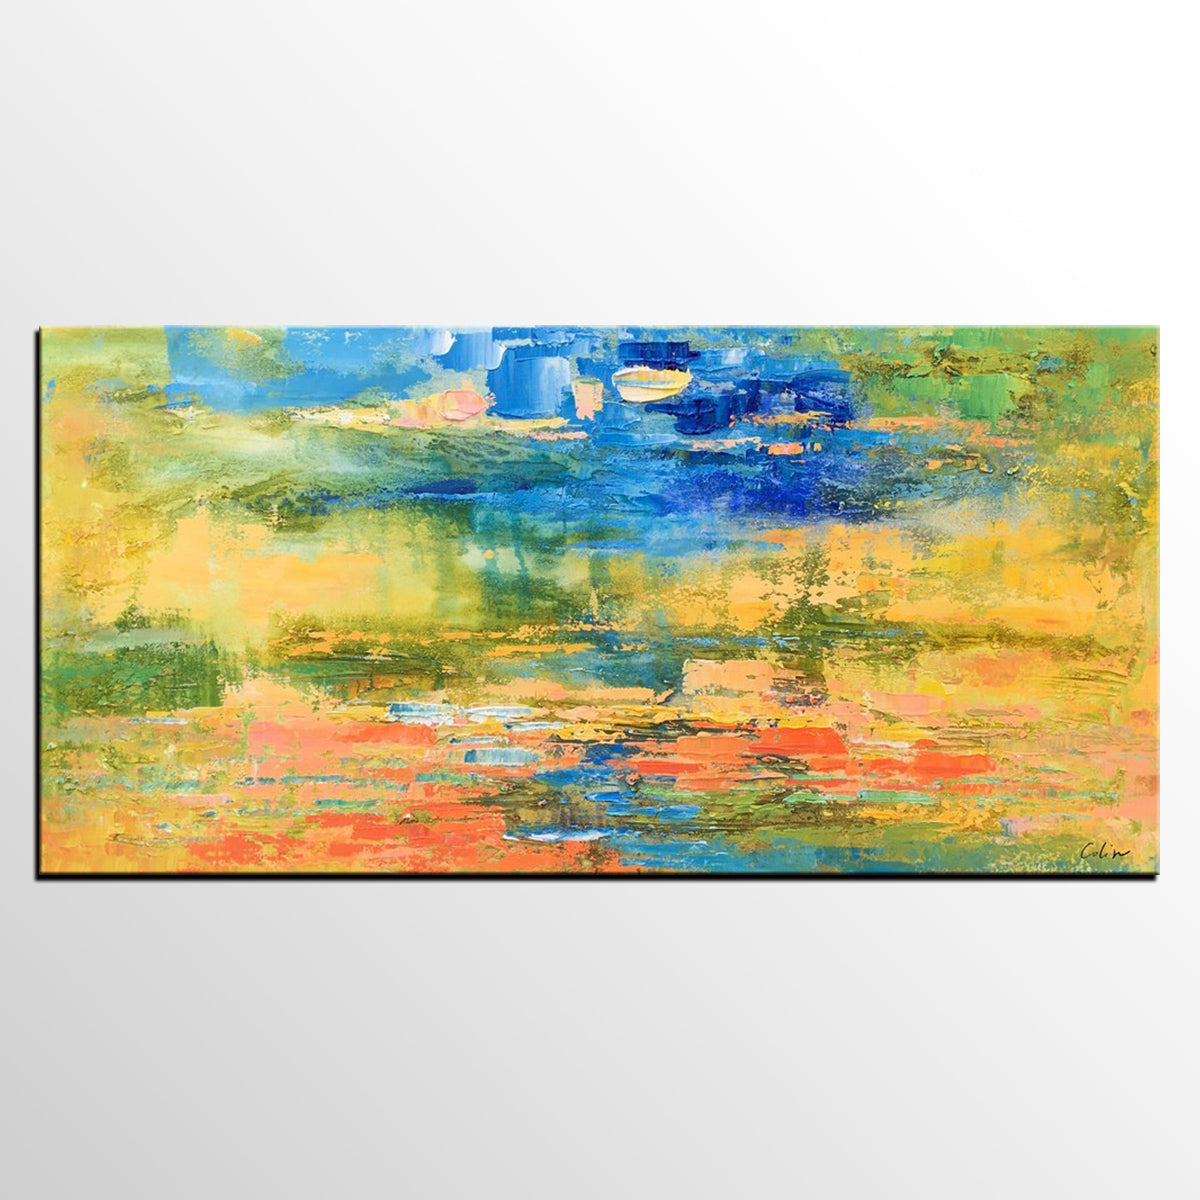 Original Painting, Abstract Art, Abstract Landscape Painting, Abstract Painting, Canvas Art, Wall Art, Contemporary Artwork, 513